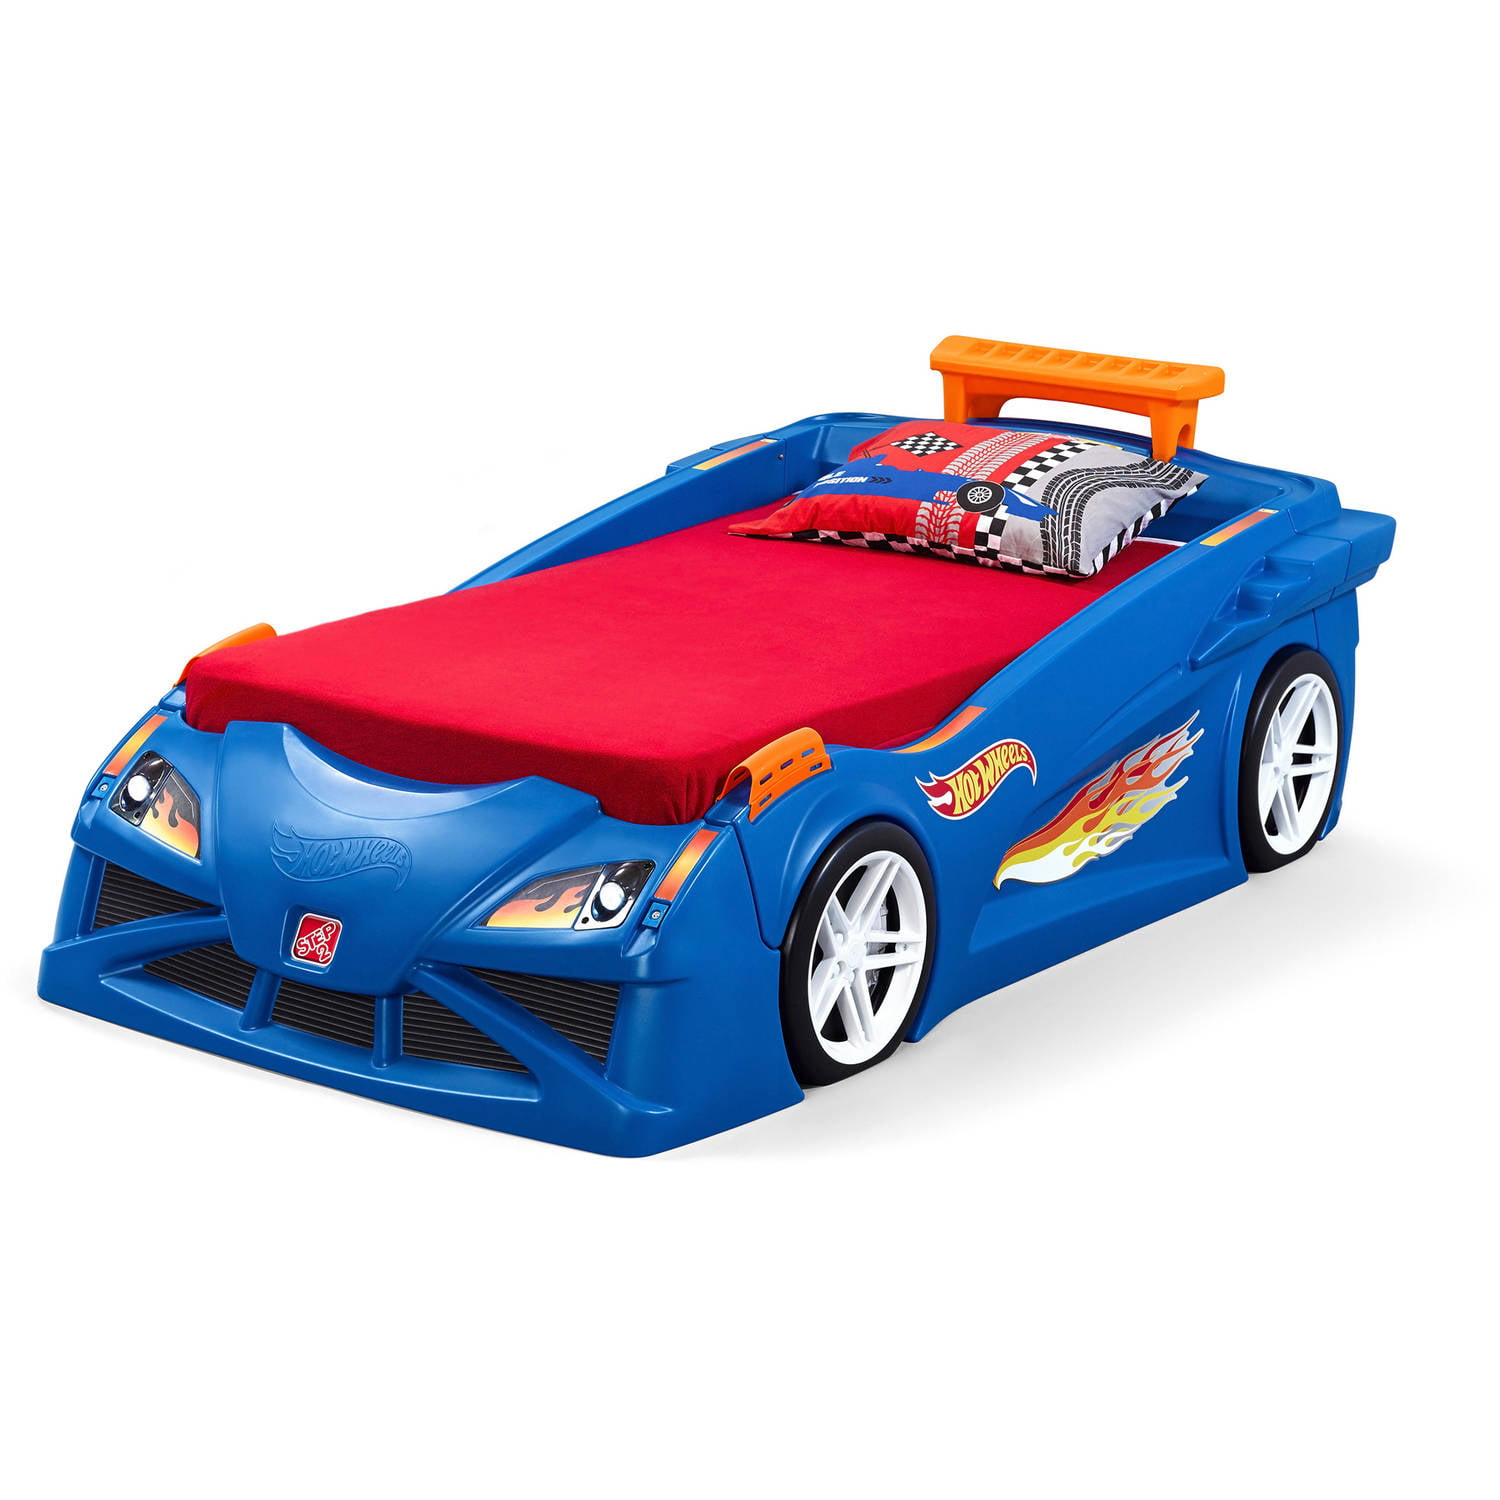 Blue car beds for kids - Blue Car Beds For Kids 1